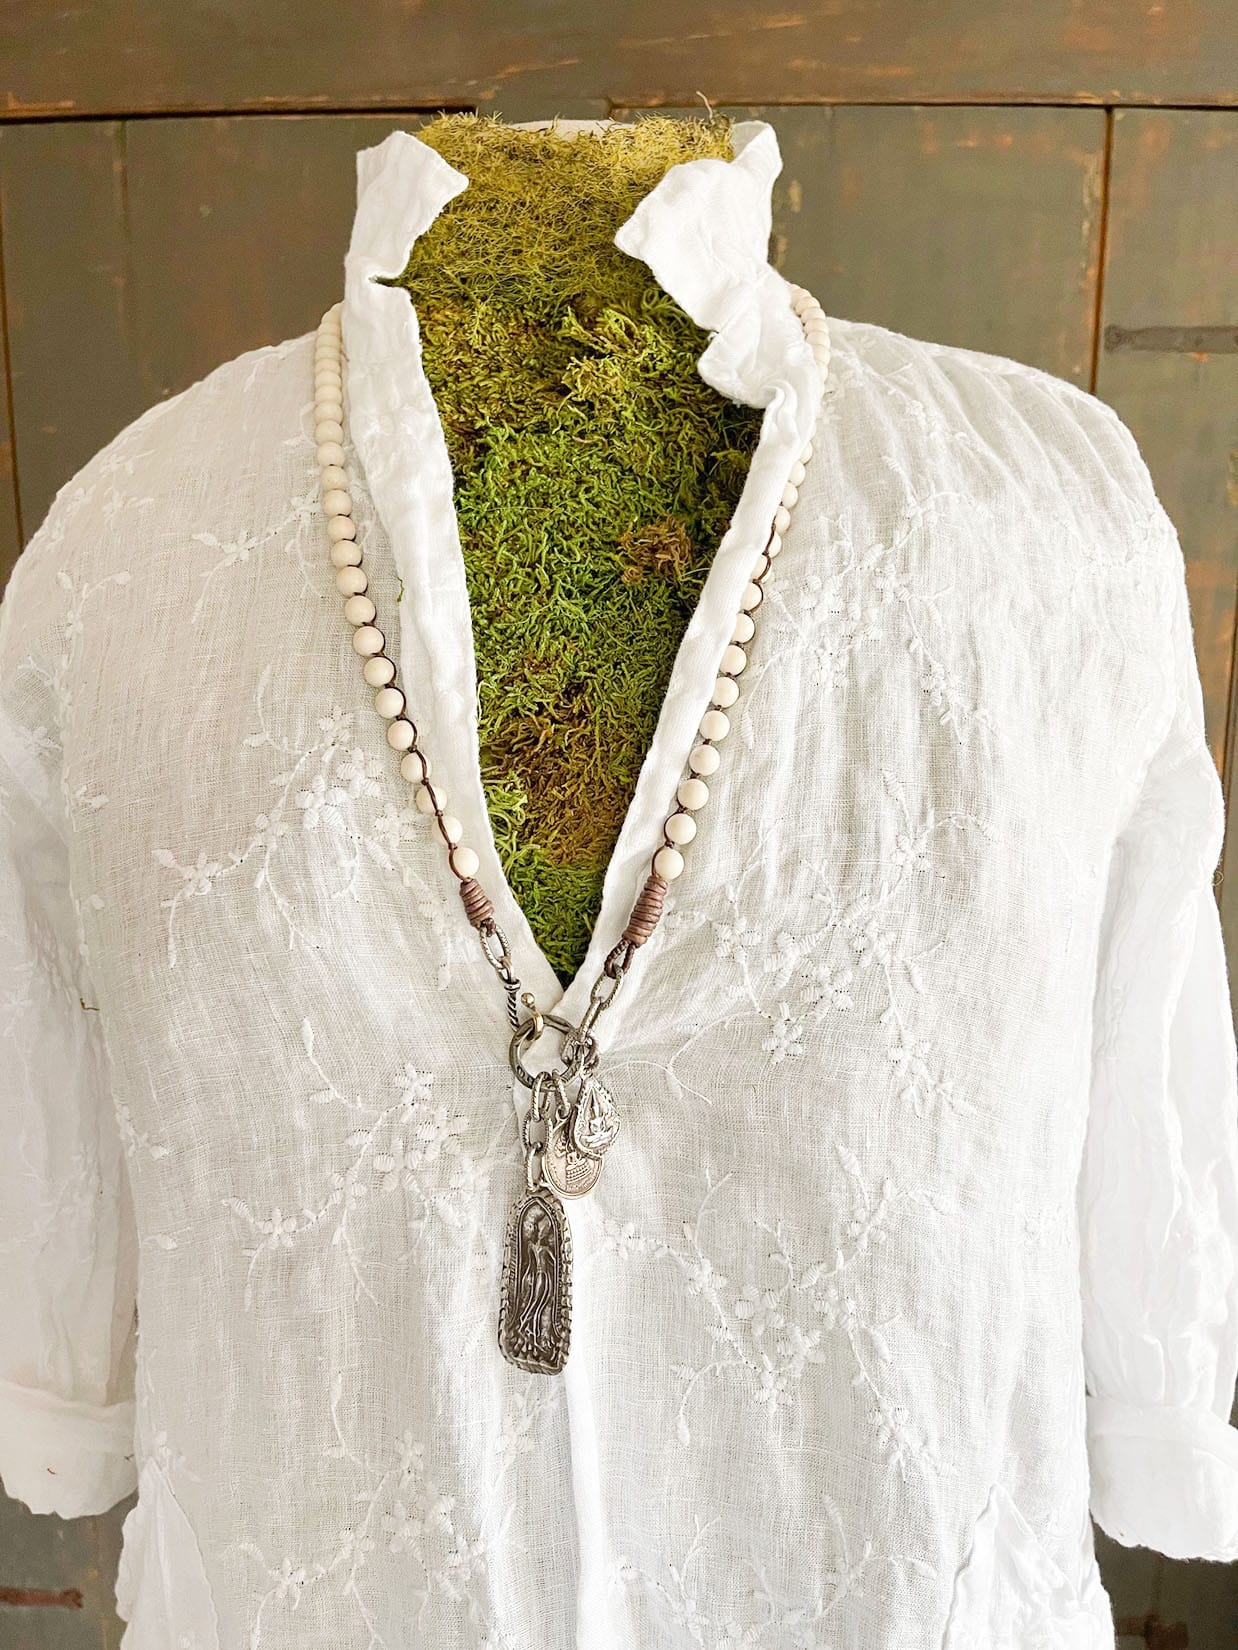 CP Shades Shirt with Paula Carvalho Necklace on Cindy Hattersley's blog